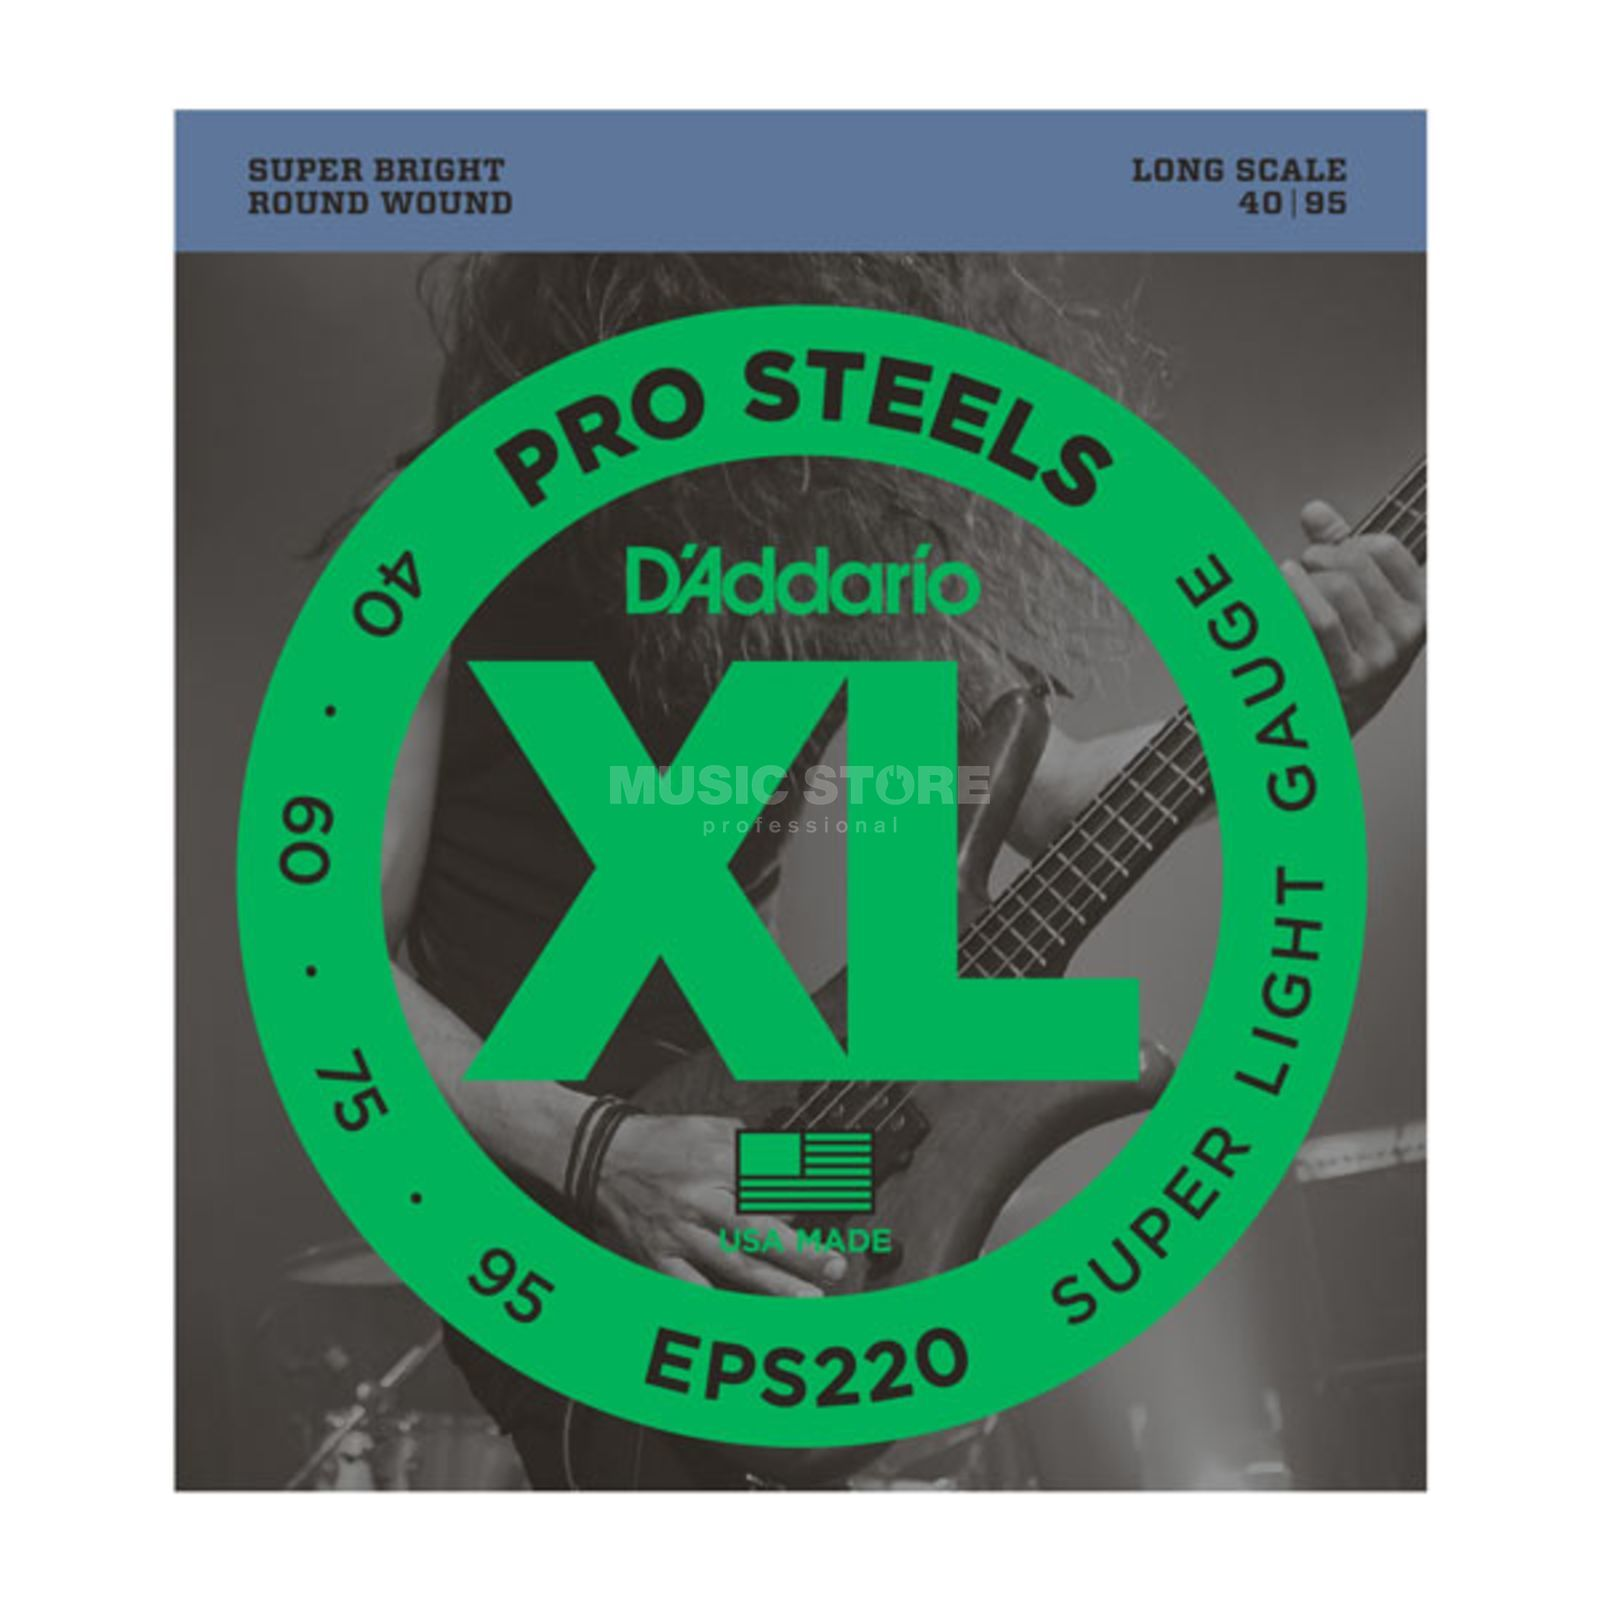 D'Addario Bass Strings Pro Steels 40-095 40-60-75-95, EPS220 Zdjęcie produktu